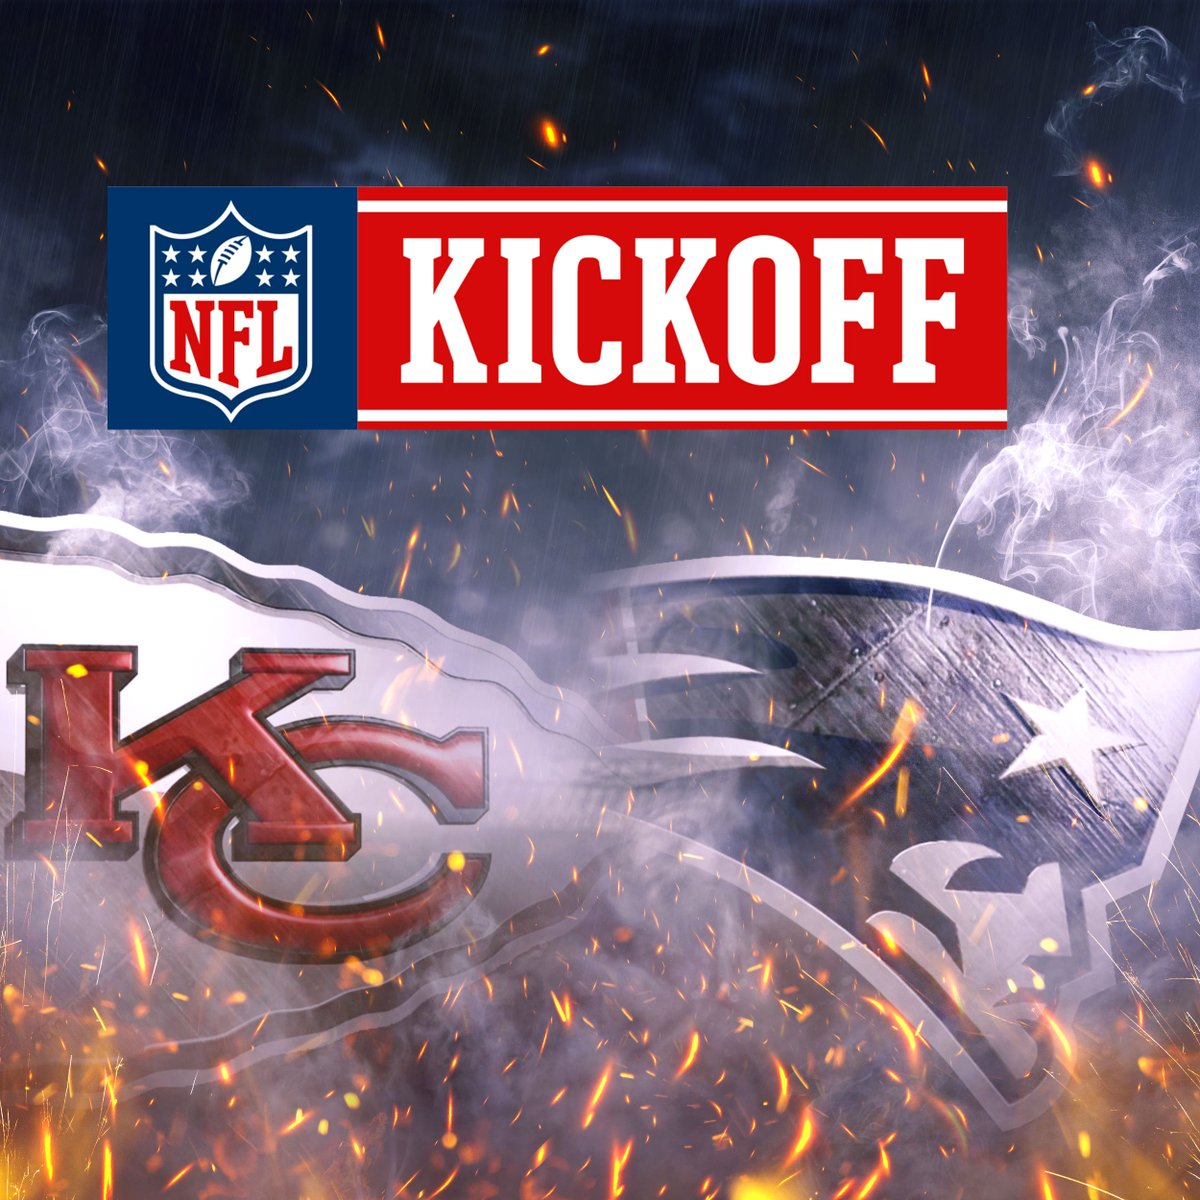 The #NFLKickoff matchup is @Chiefs - @Patriots on @NBC!   #NFLSchedule...